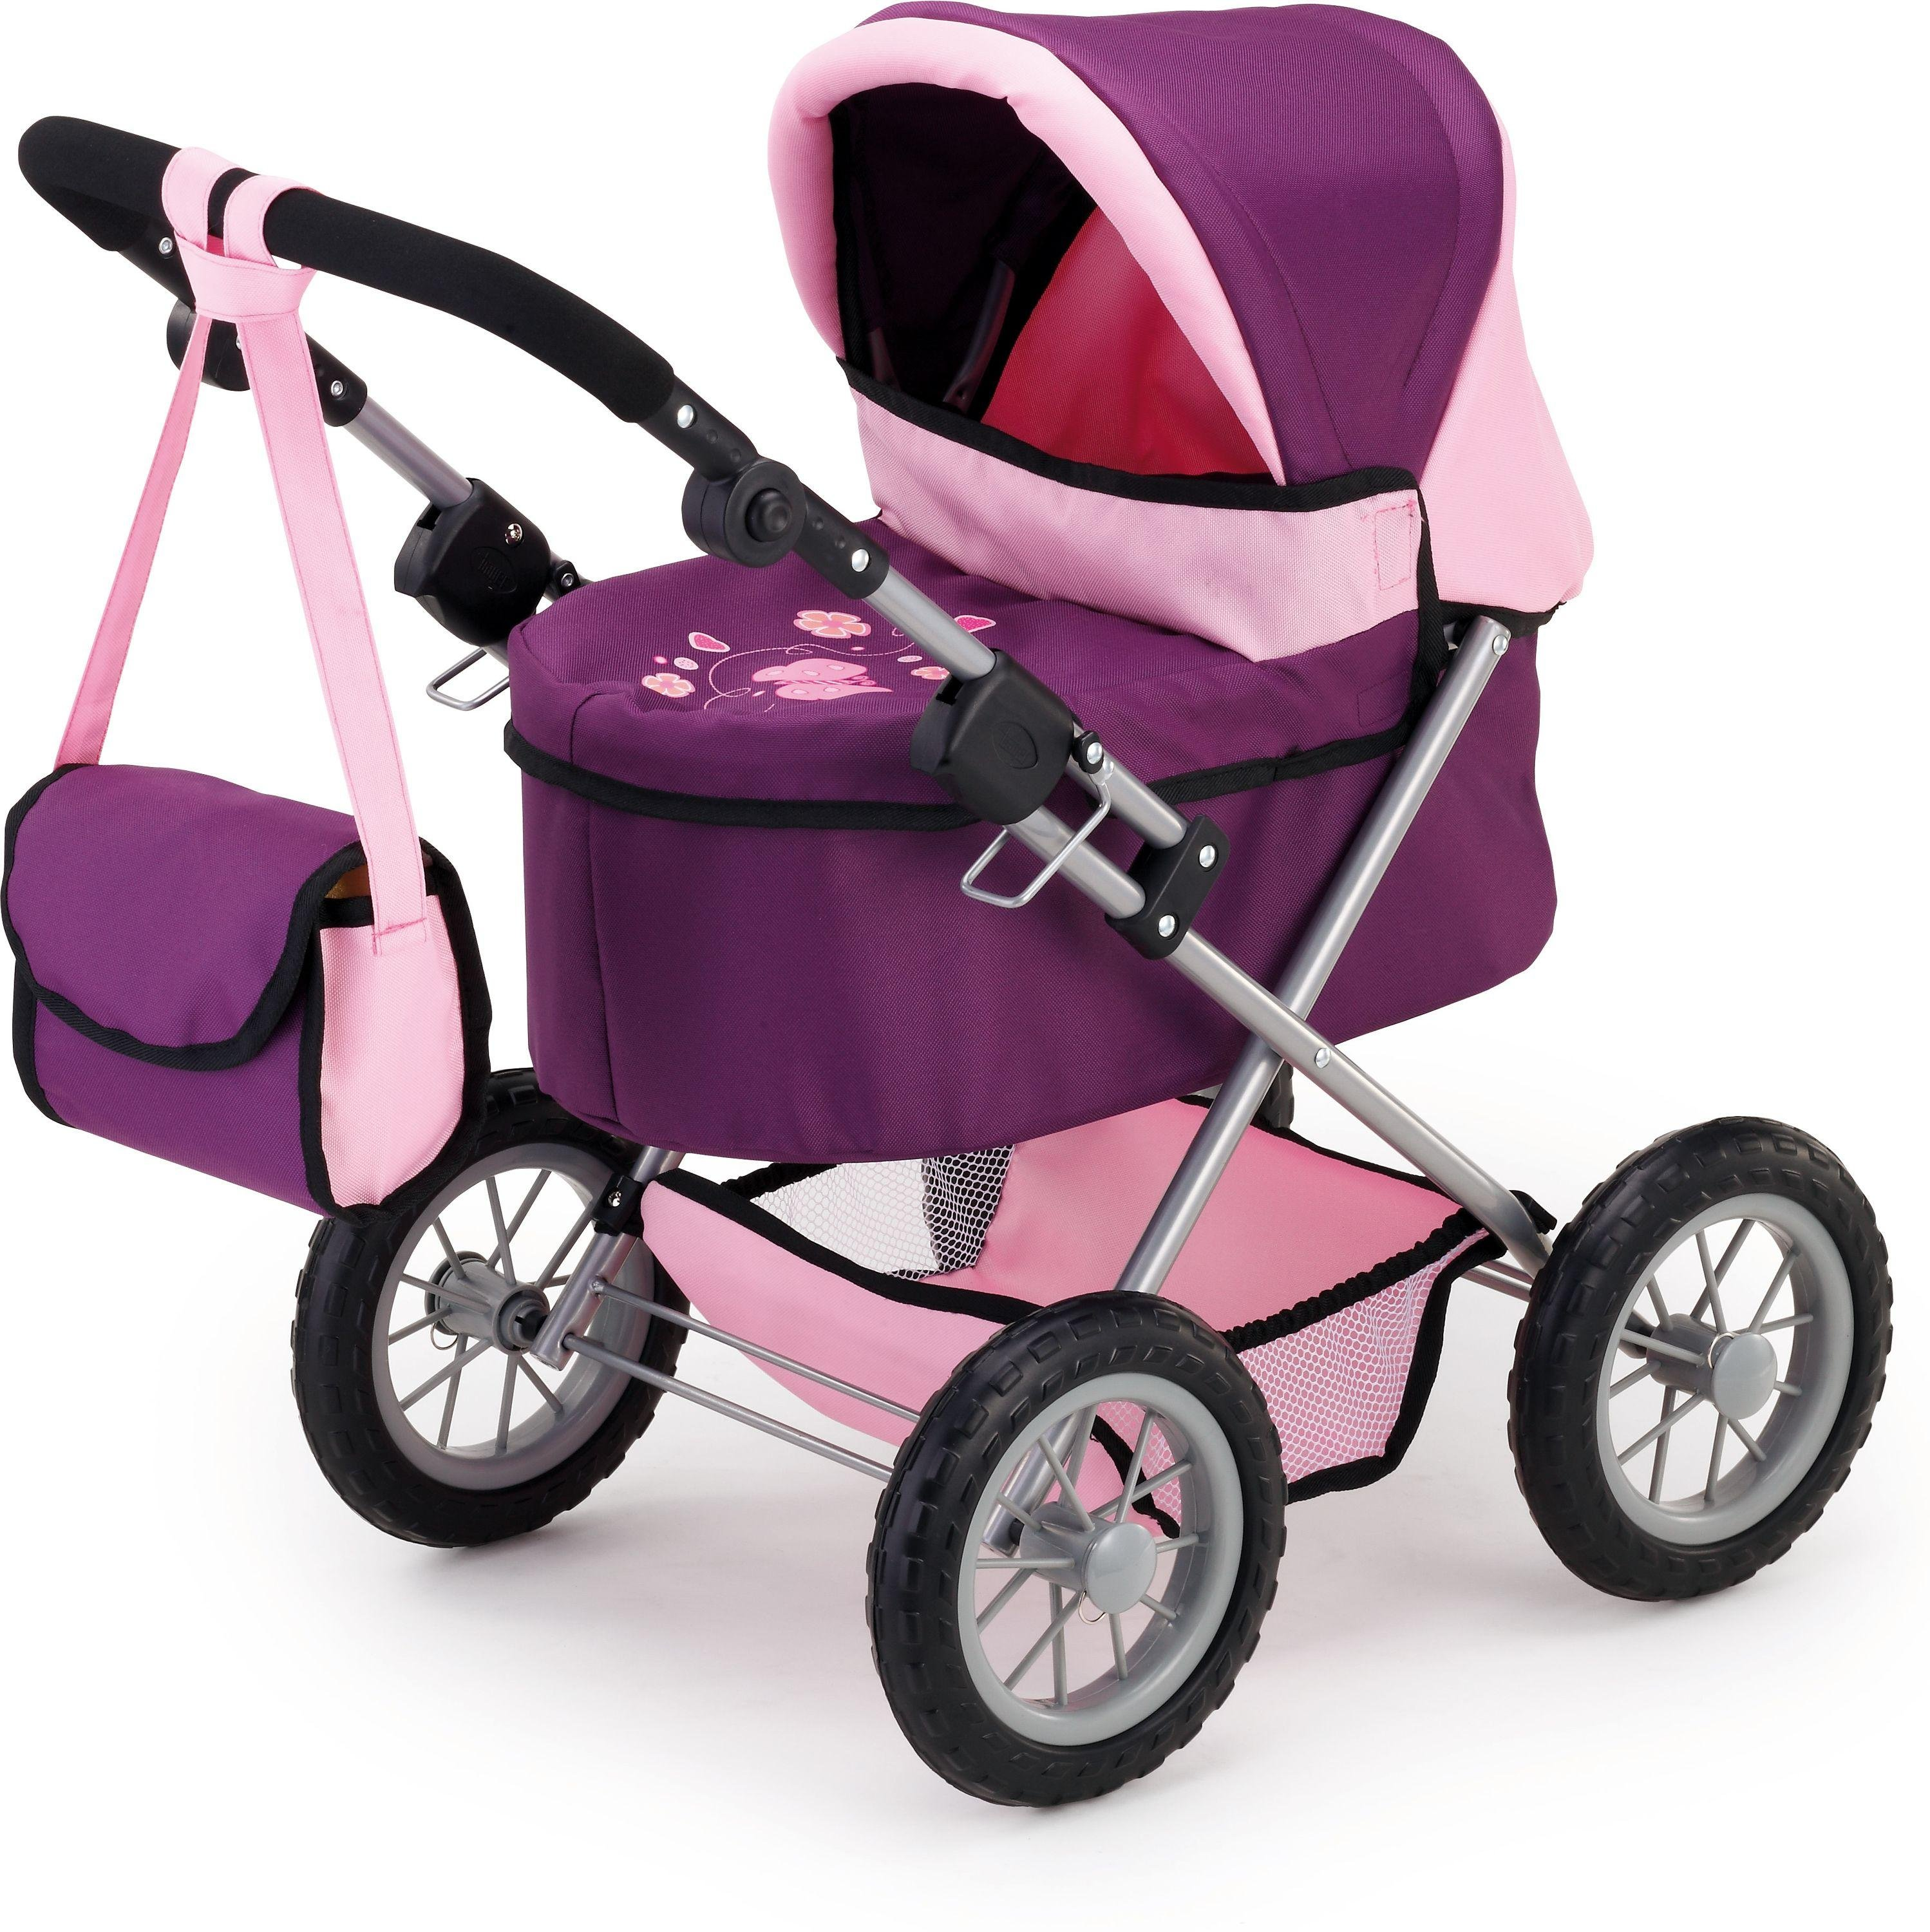 Image of Bayer - Design Trendy Doll Pram - Mauve